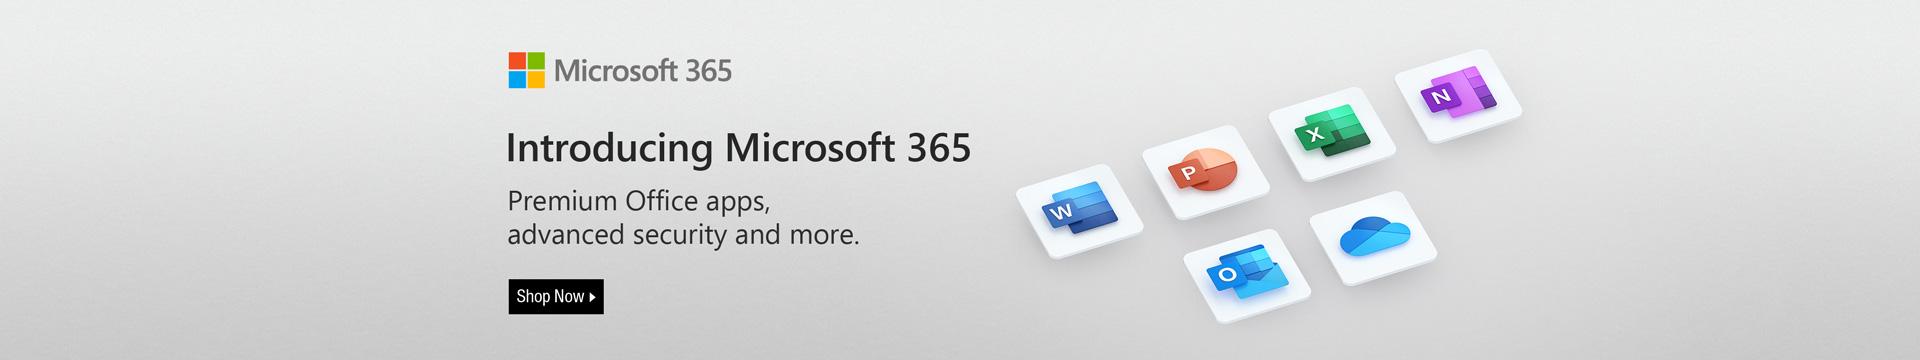 Introducing Microsoft 365